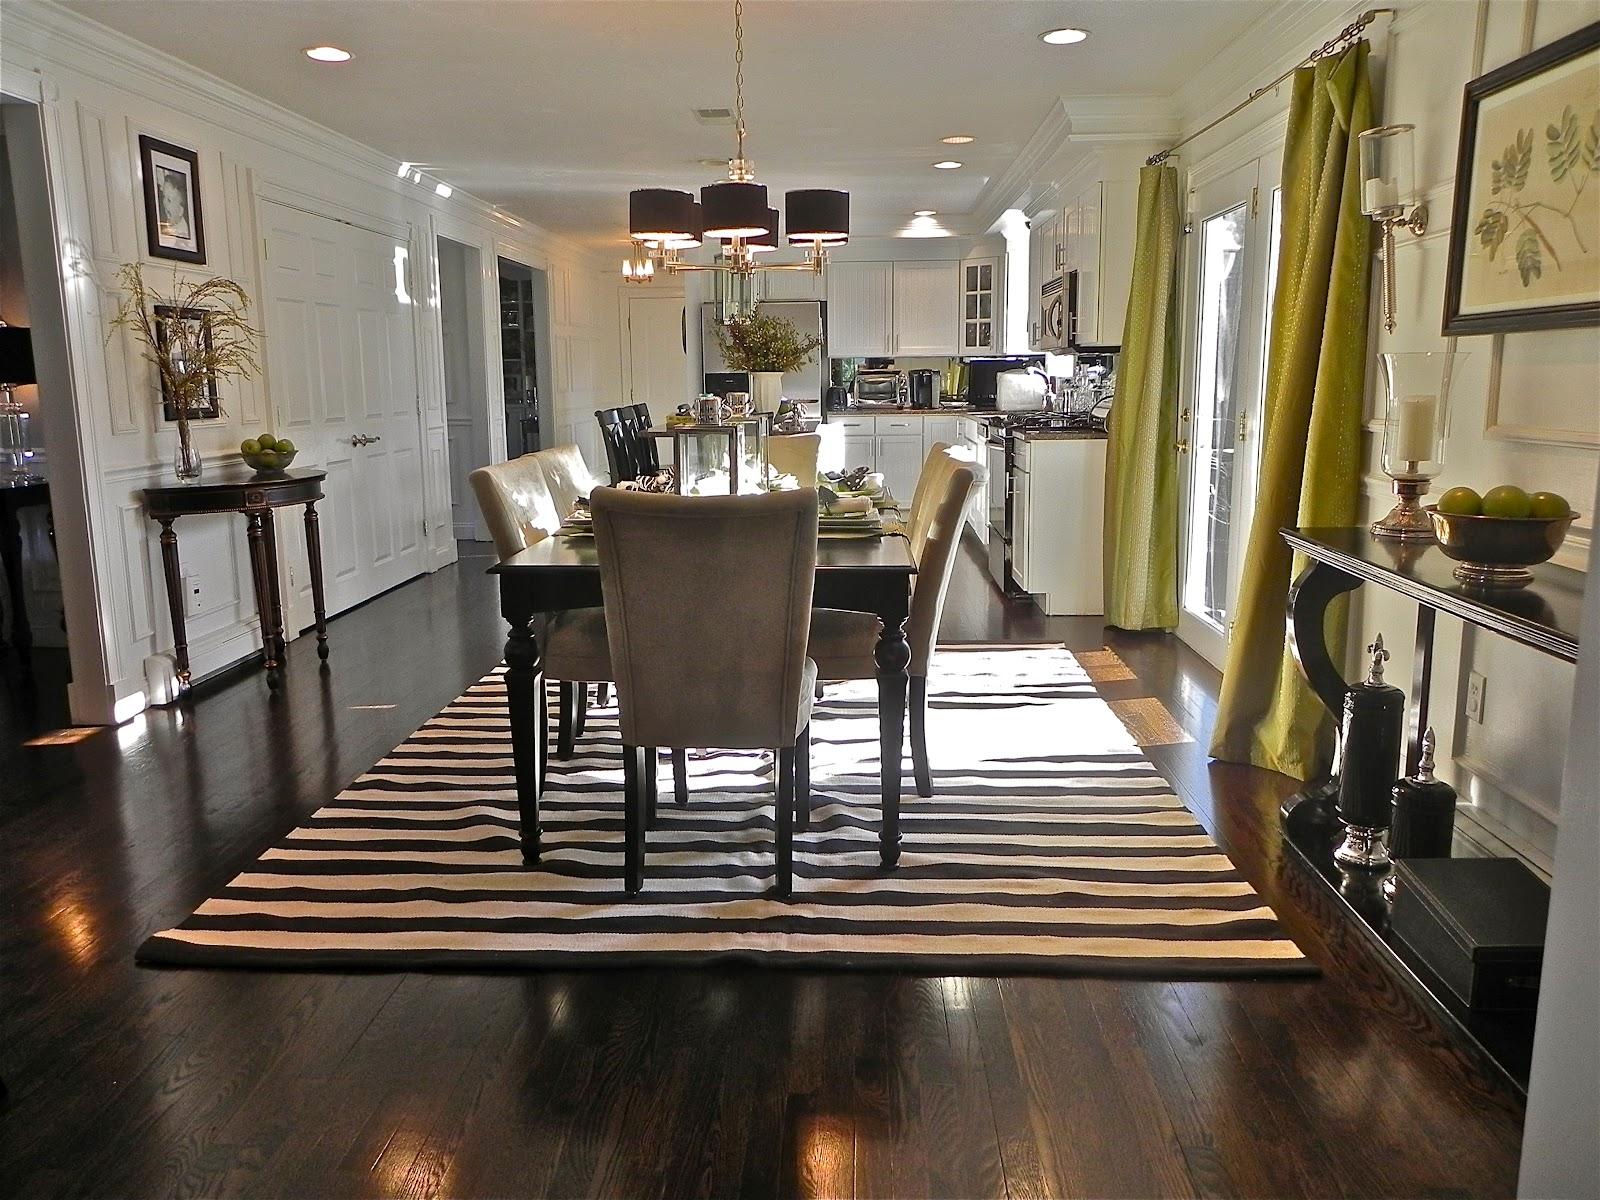 South Shore Decorating Blog Kitchen Rug Decision Update and